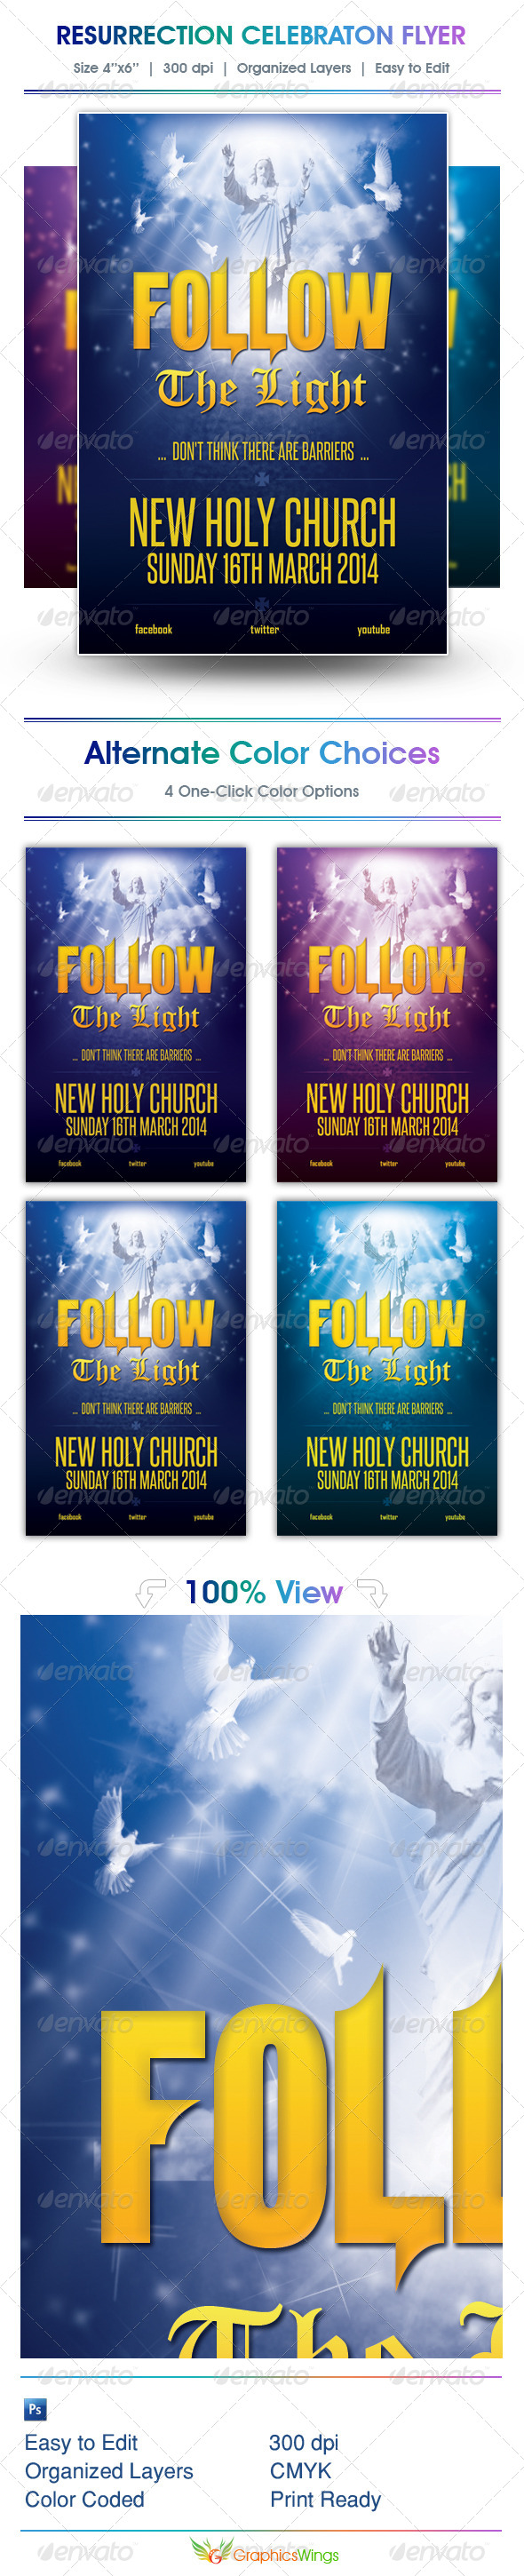 Follow The Light Church Flyer Template - Church Flyers